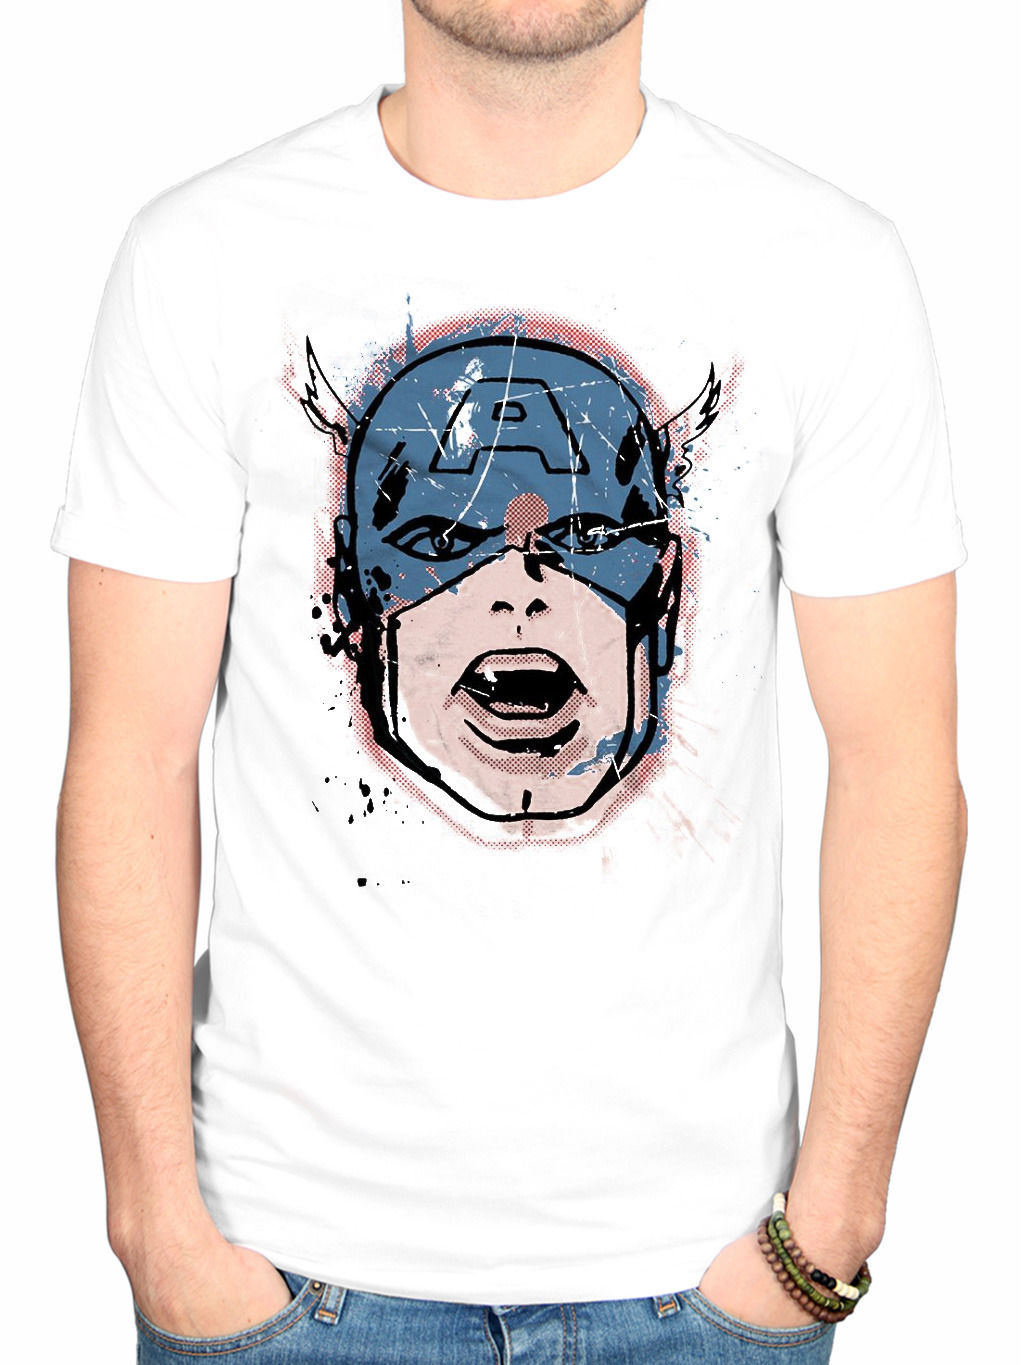 Comics Mens Hulk Big Head Distressed Short Sleeve T-Shirt MARVEL Free Shipping Footlocker Outlet Manchester Free Shipping New Arrival Outlet Footlocker Pictures Discount Real CaAsbrFxR4